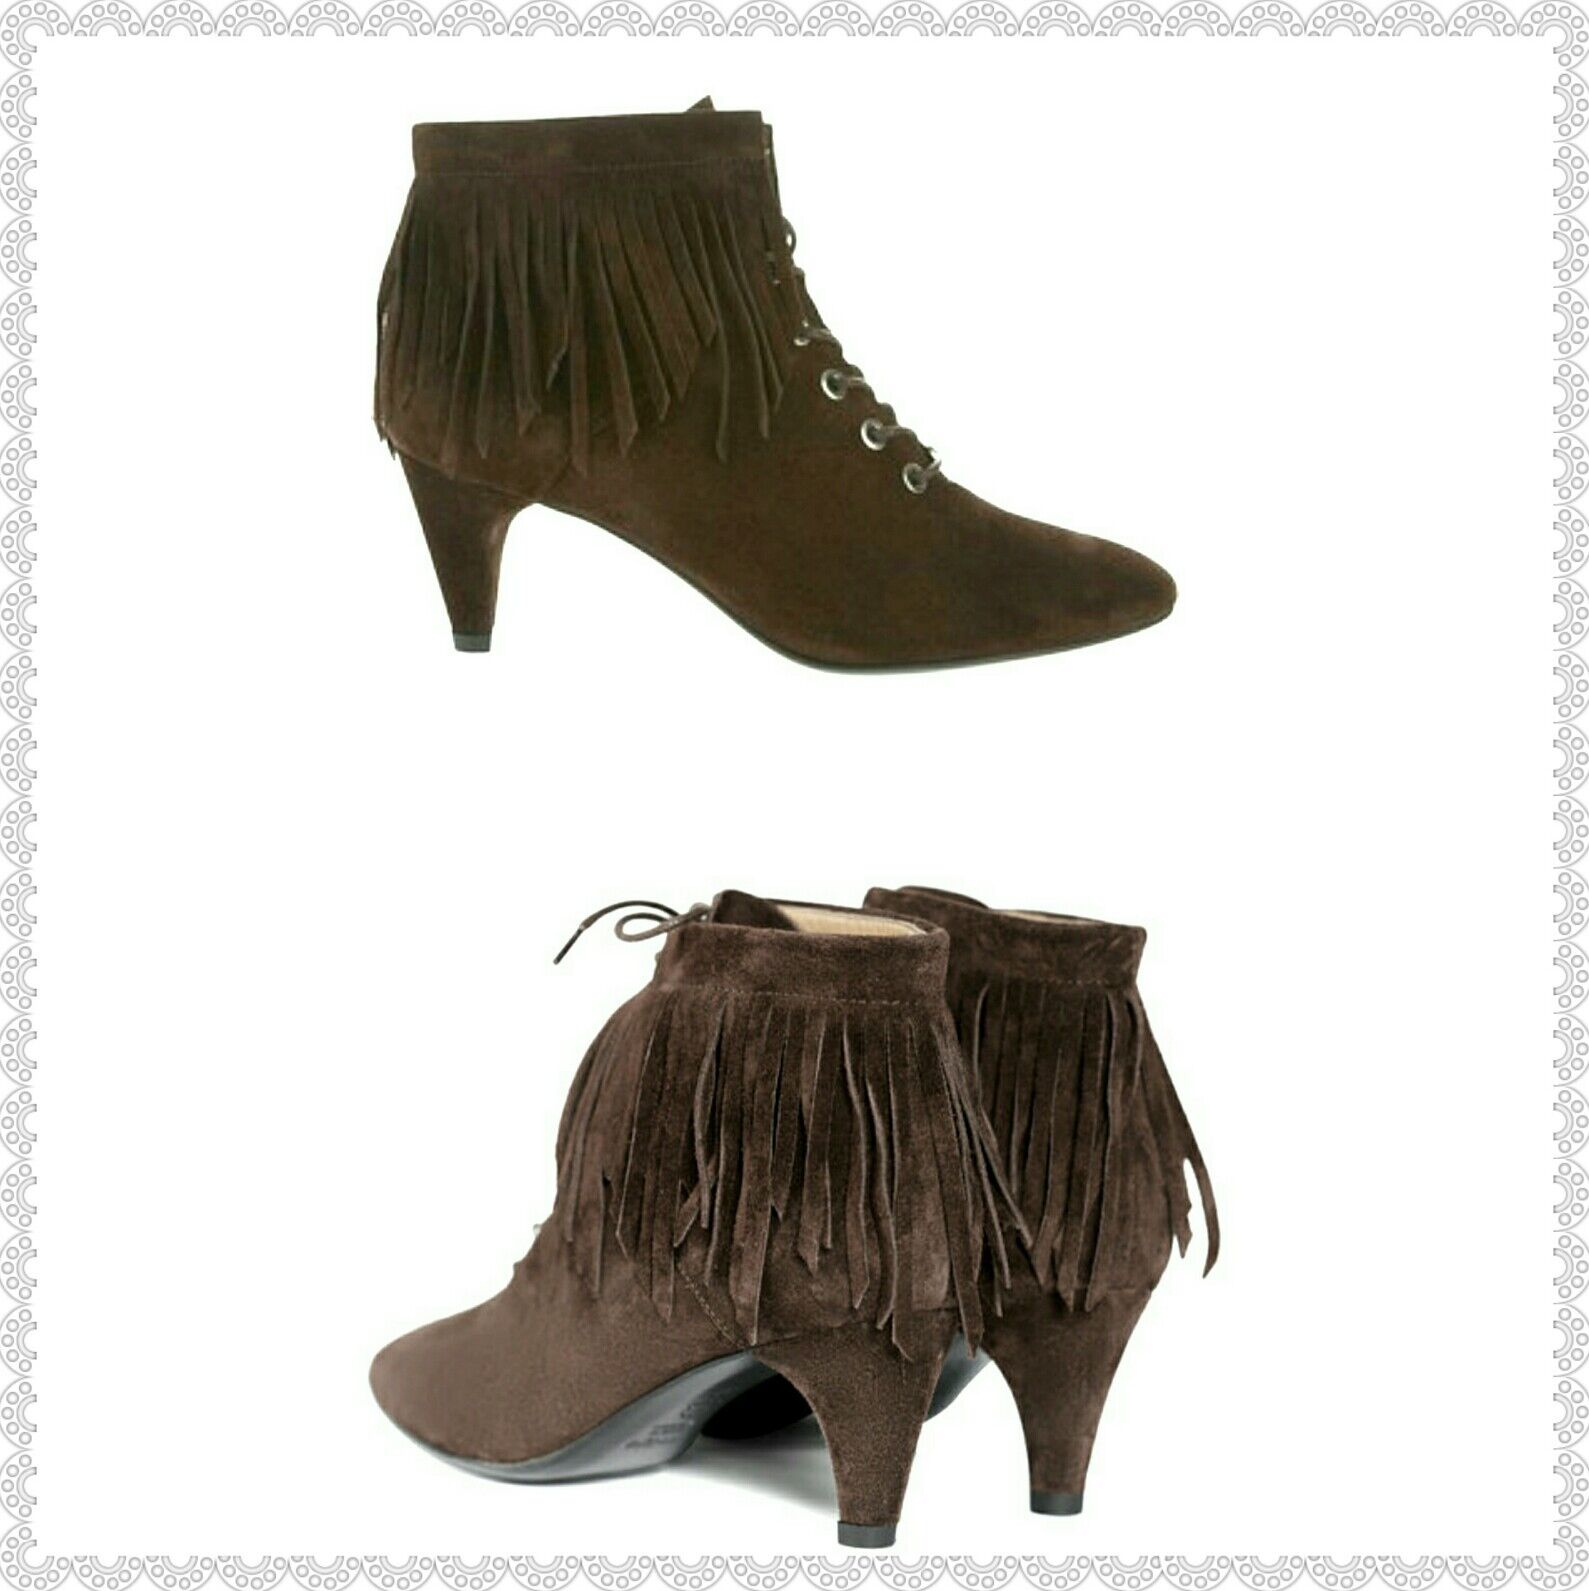 New display  580 Maje Fox Ankle Boot Fringed Suede Leather Size 36 NWOB Granny